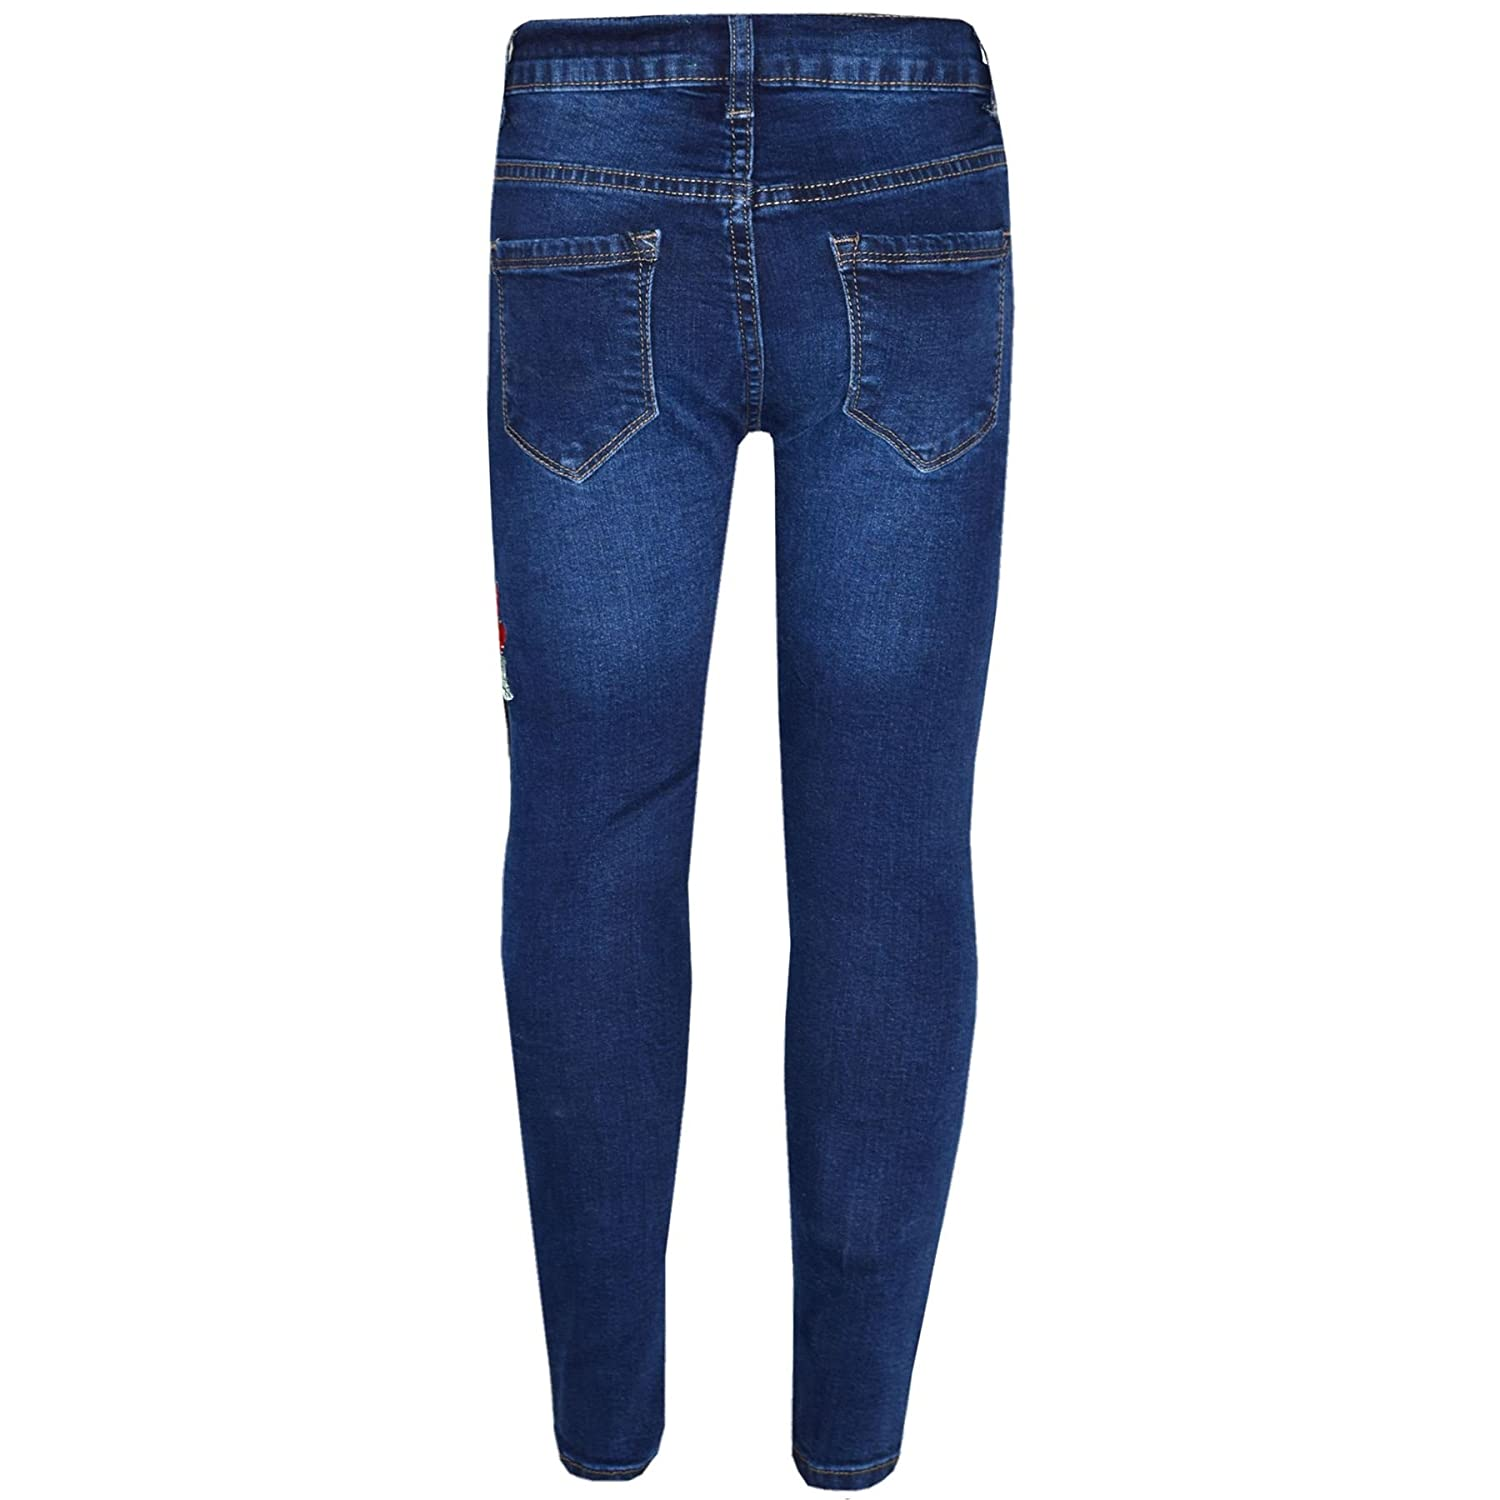 4921523393591 Amazon.com: Girls Stretchy Jeans Kids Ripped Denim Pants Trousers Jeggings  Age 5-13 Years: Clothing